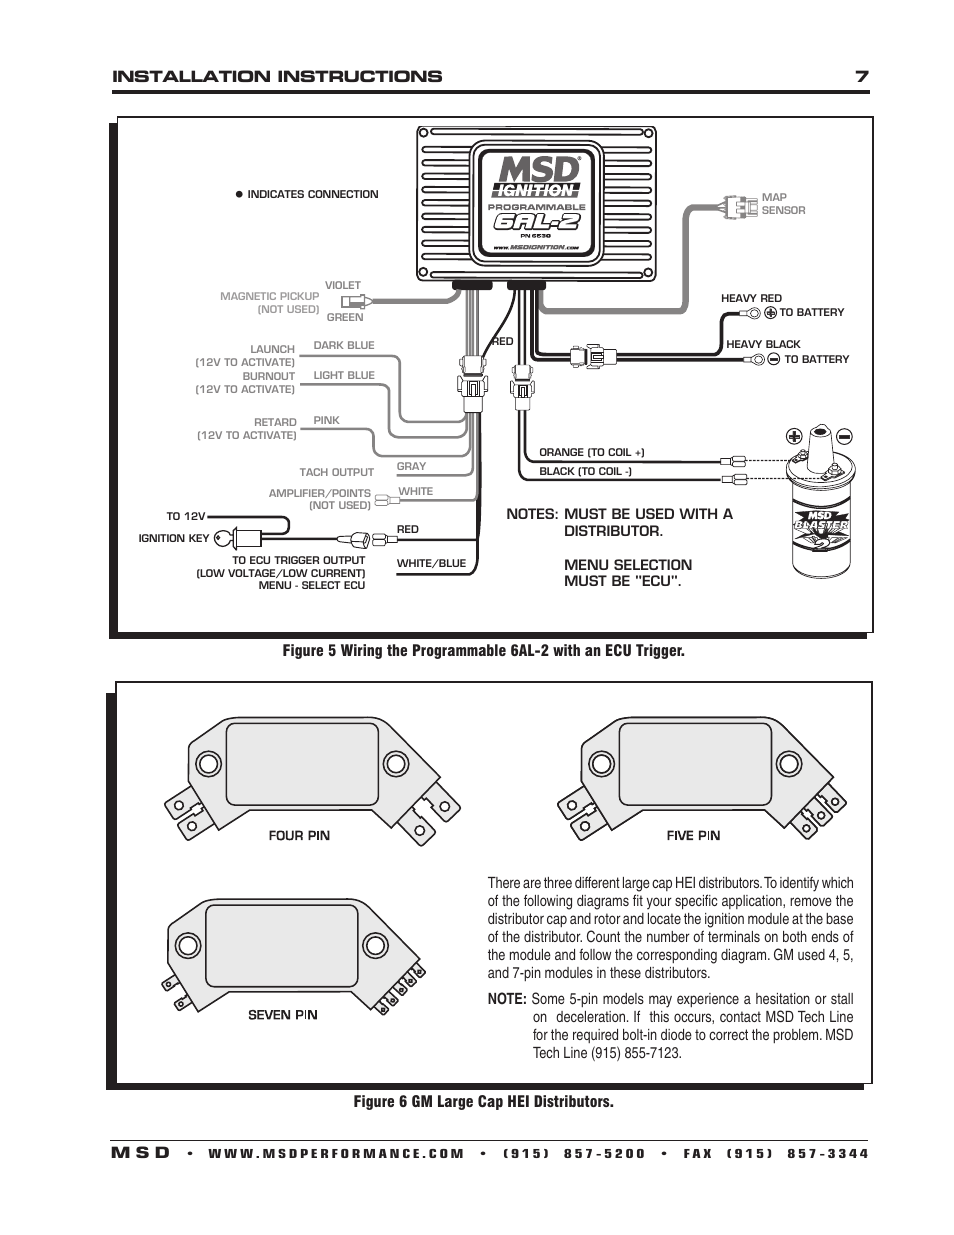 msd 6530 digital programmable 6al 2 installation page7?resize\\\\\\\=665%2C861 remarkable msd 6a wiring diagram chevy hei photos wiring msd 6al hei wiring diagram at n-0.co